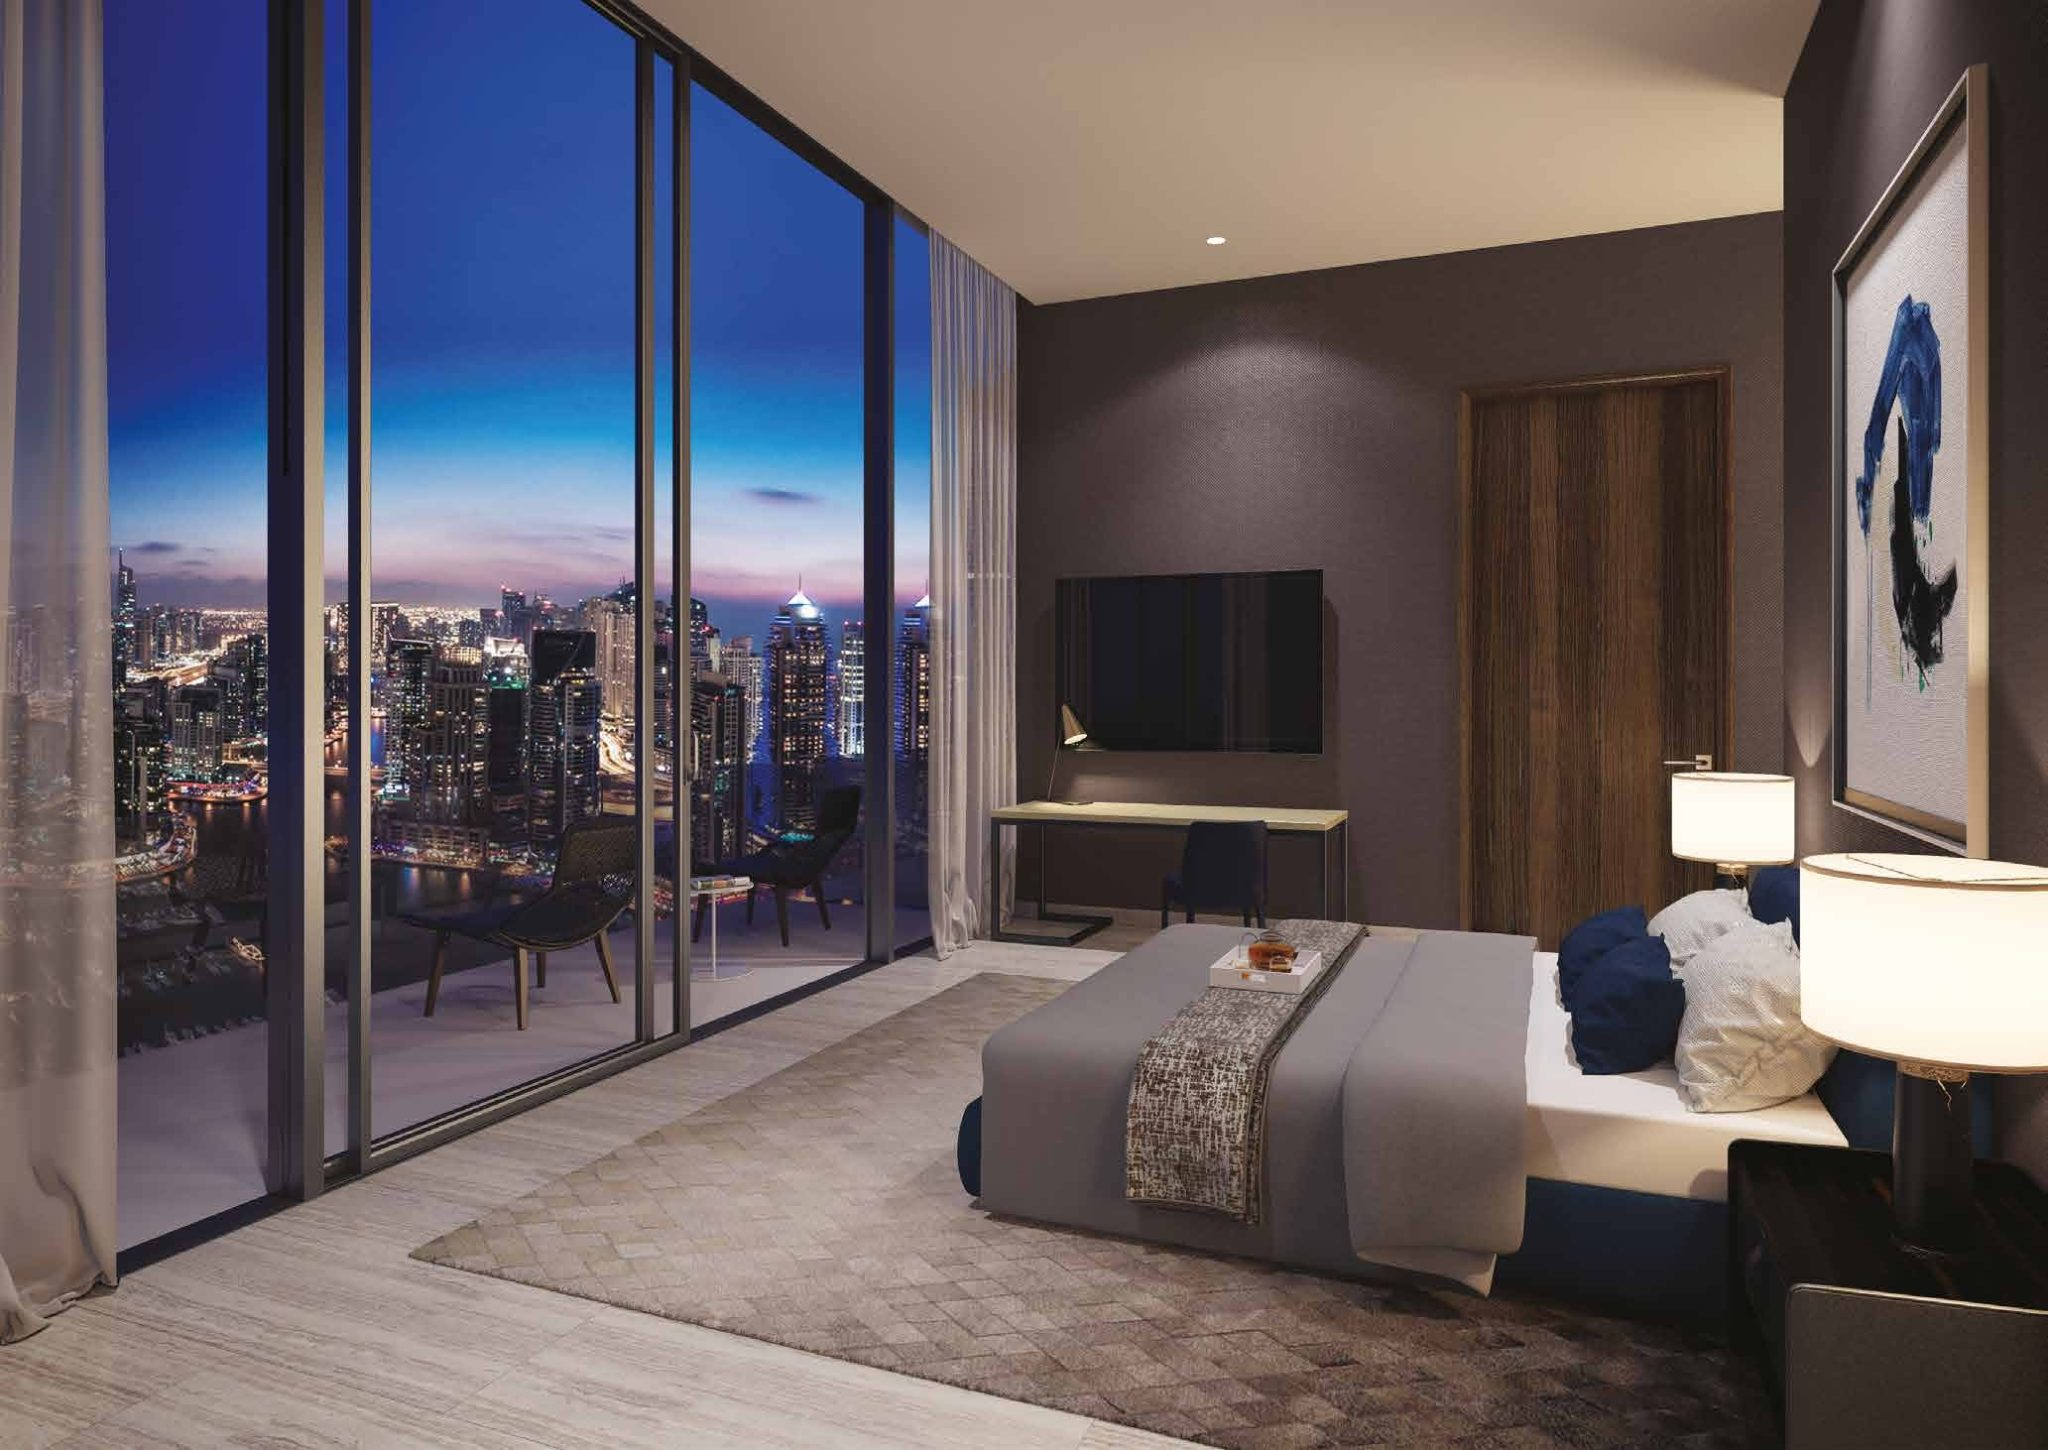 THE PENTHOUSE MASTER BEDROOM